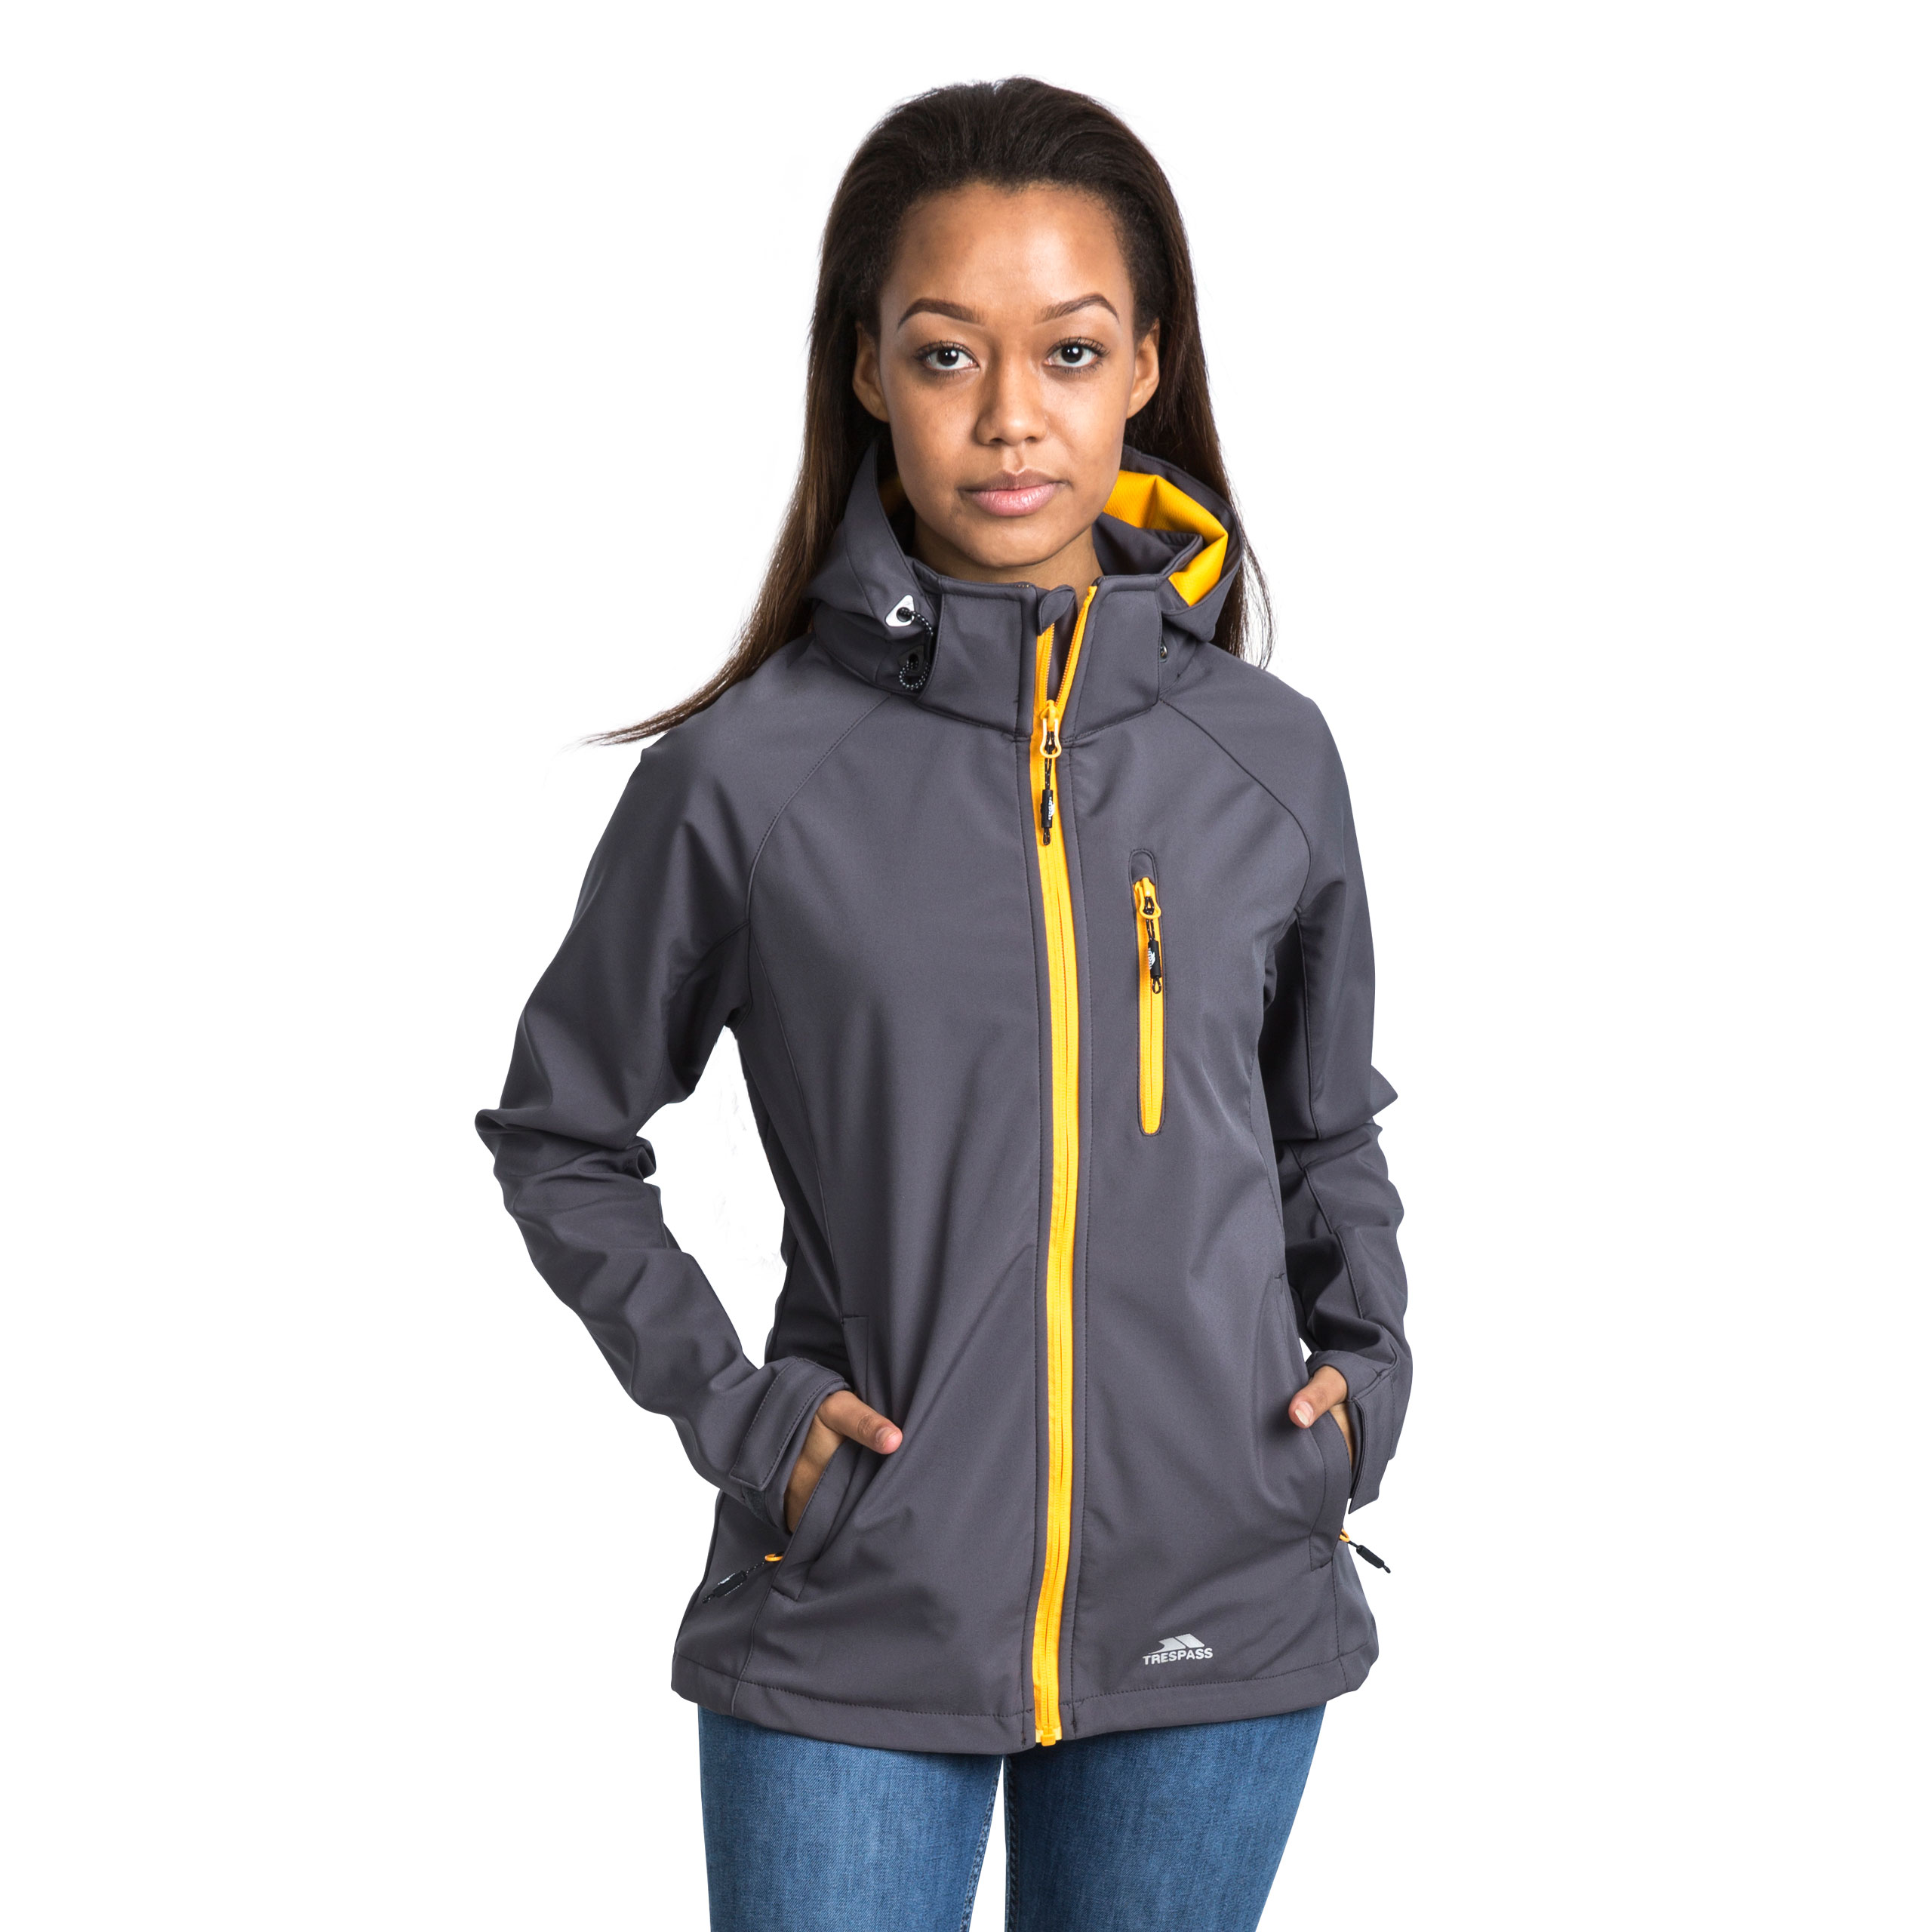 Trespass-Lorina-Women-Softshell-Jacket-Waterproof-Windproof-and-Breathable thumbnail 14